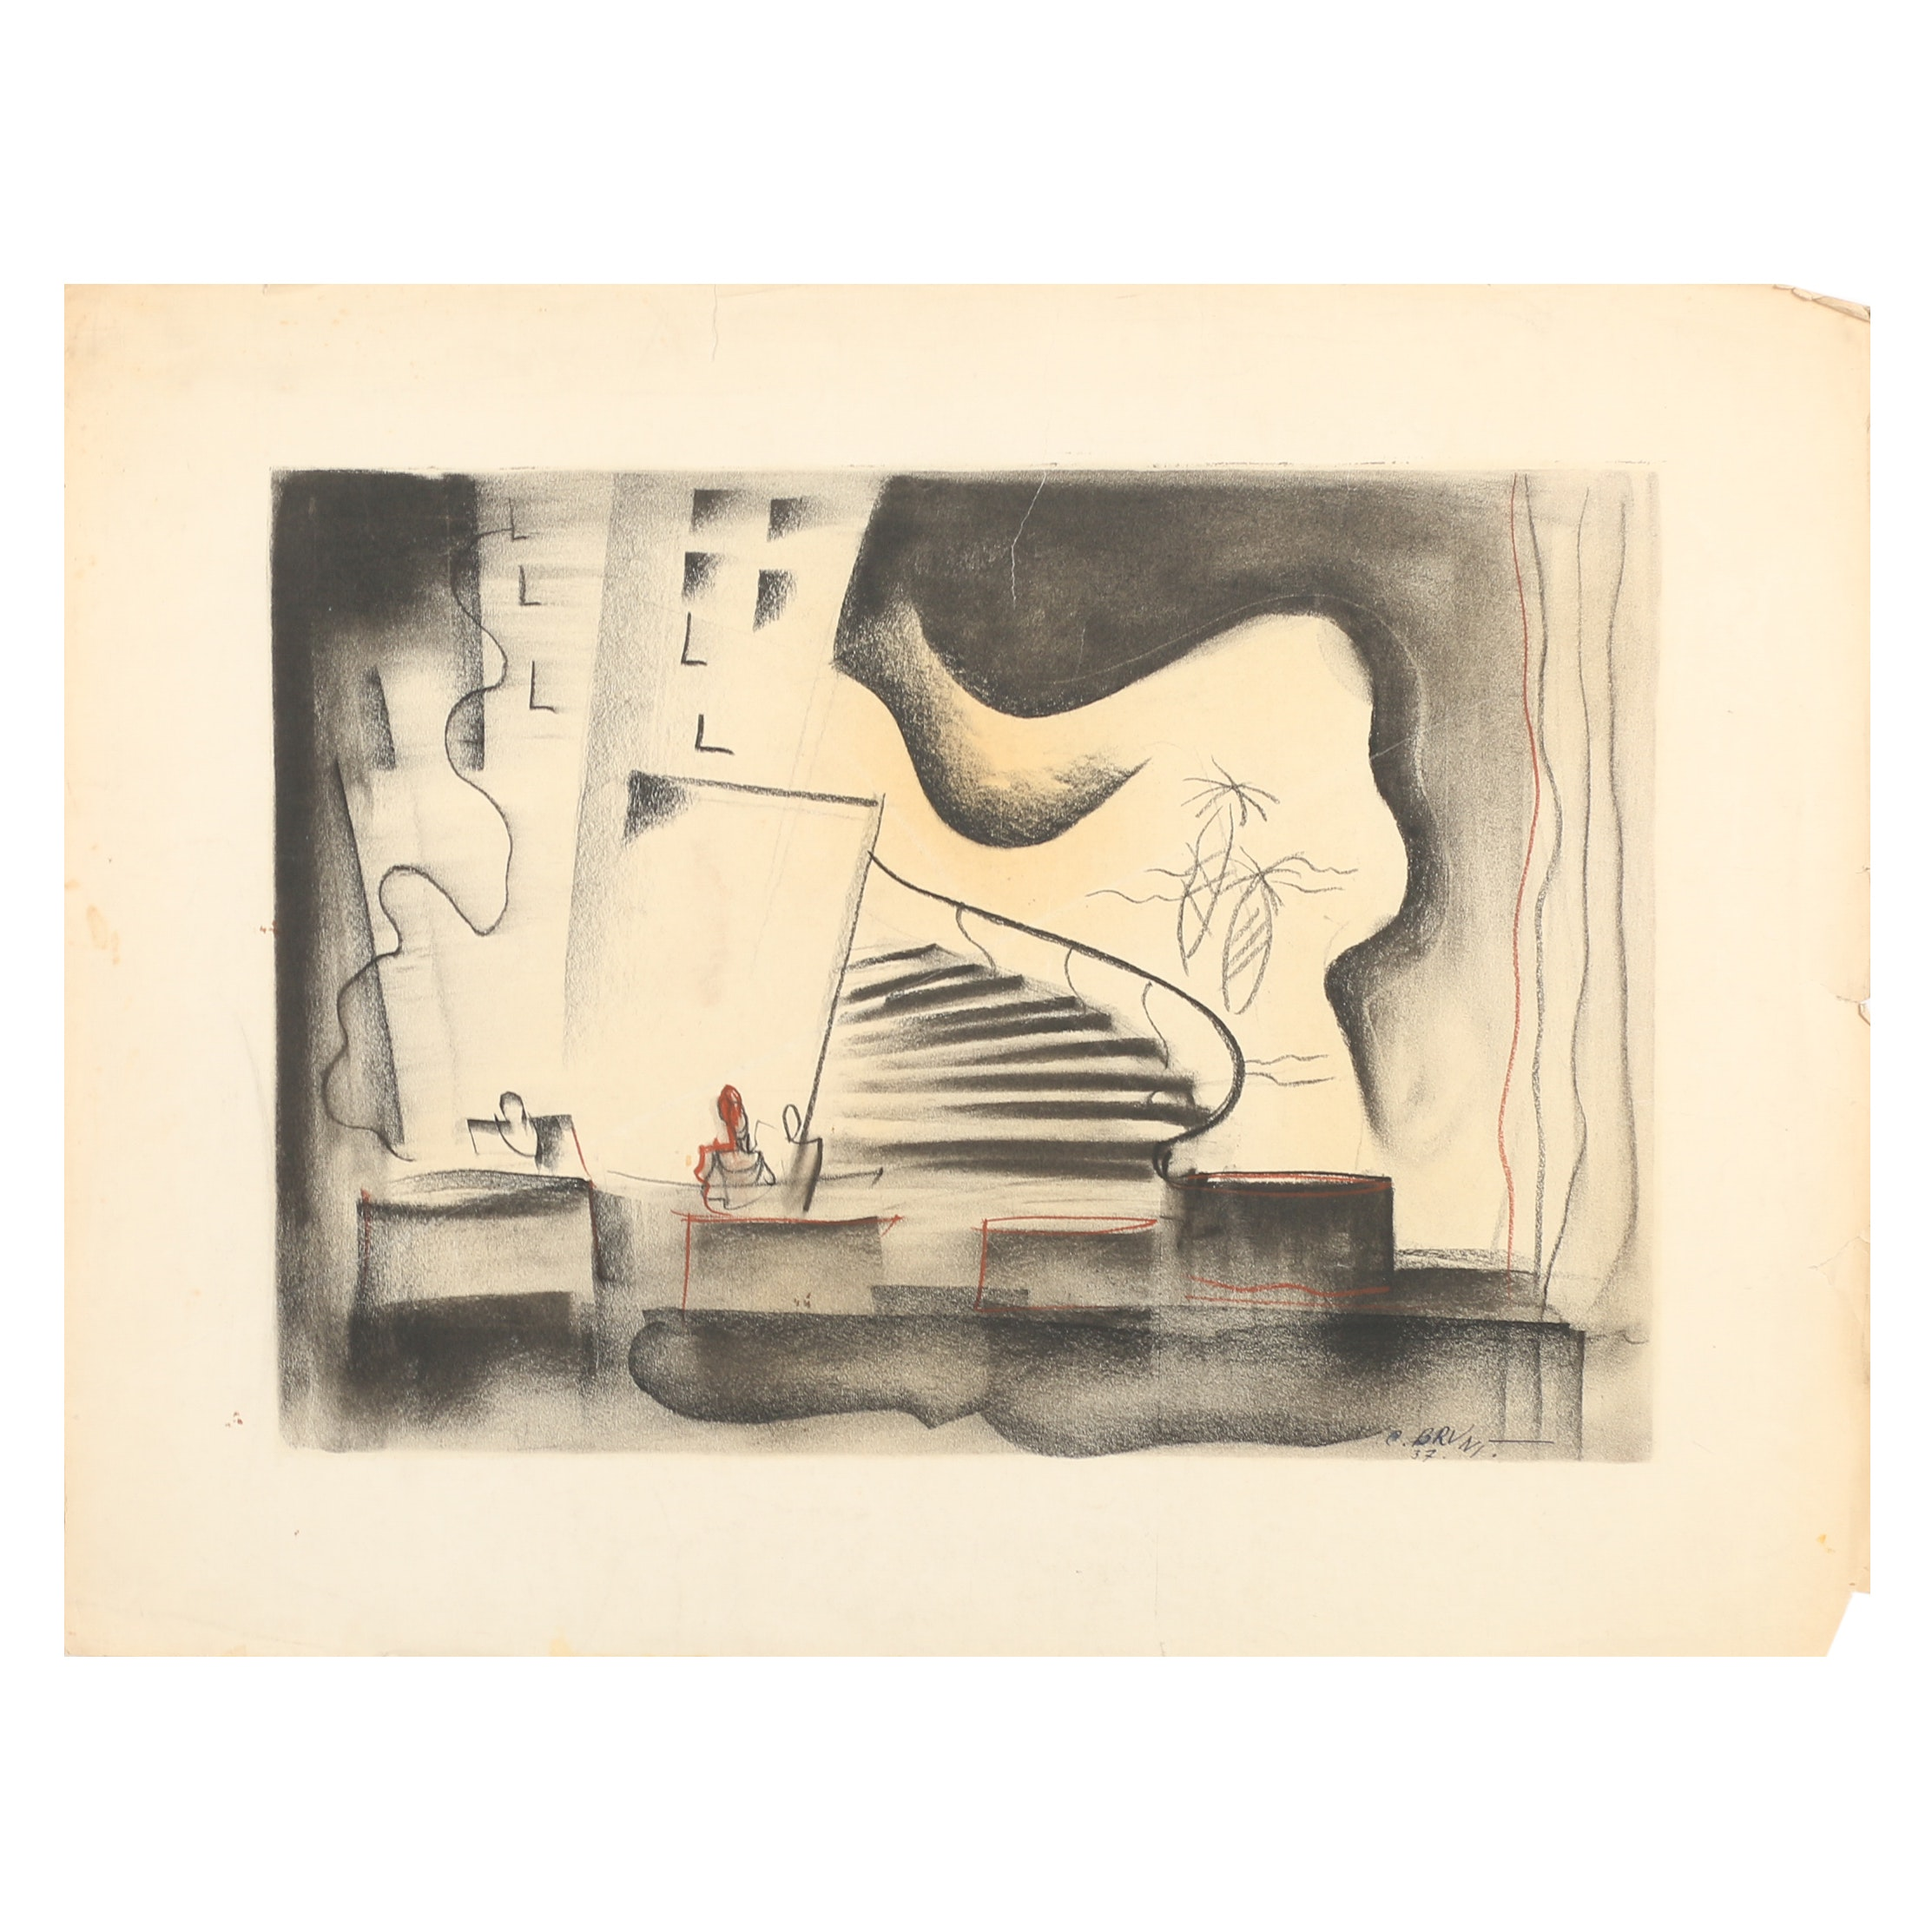 C. Brunt Drawing of an Abstract Composition